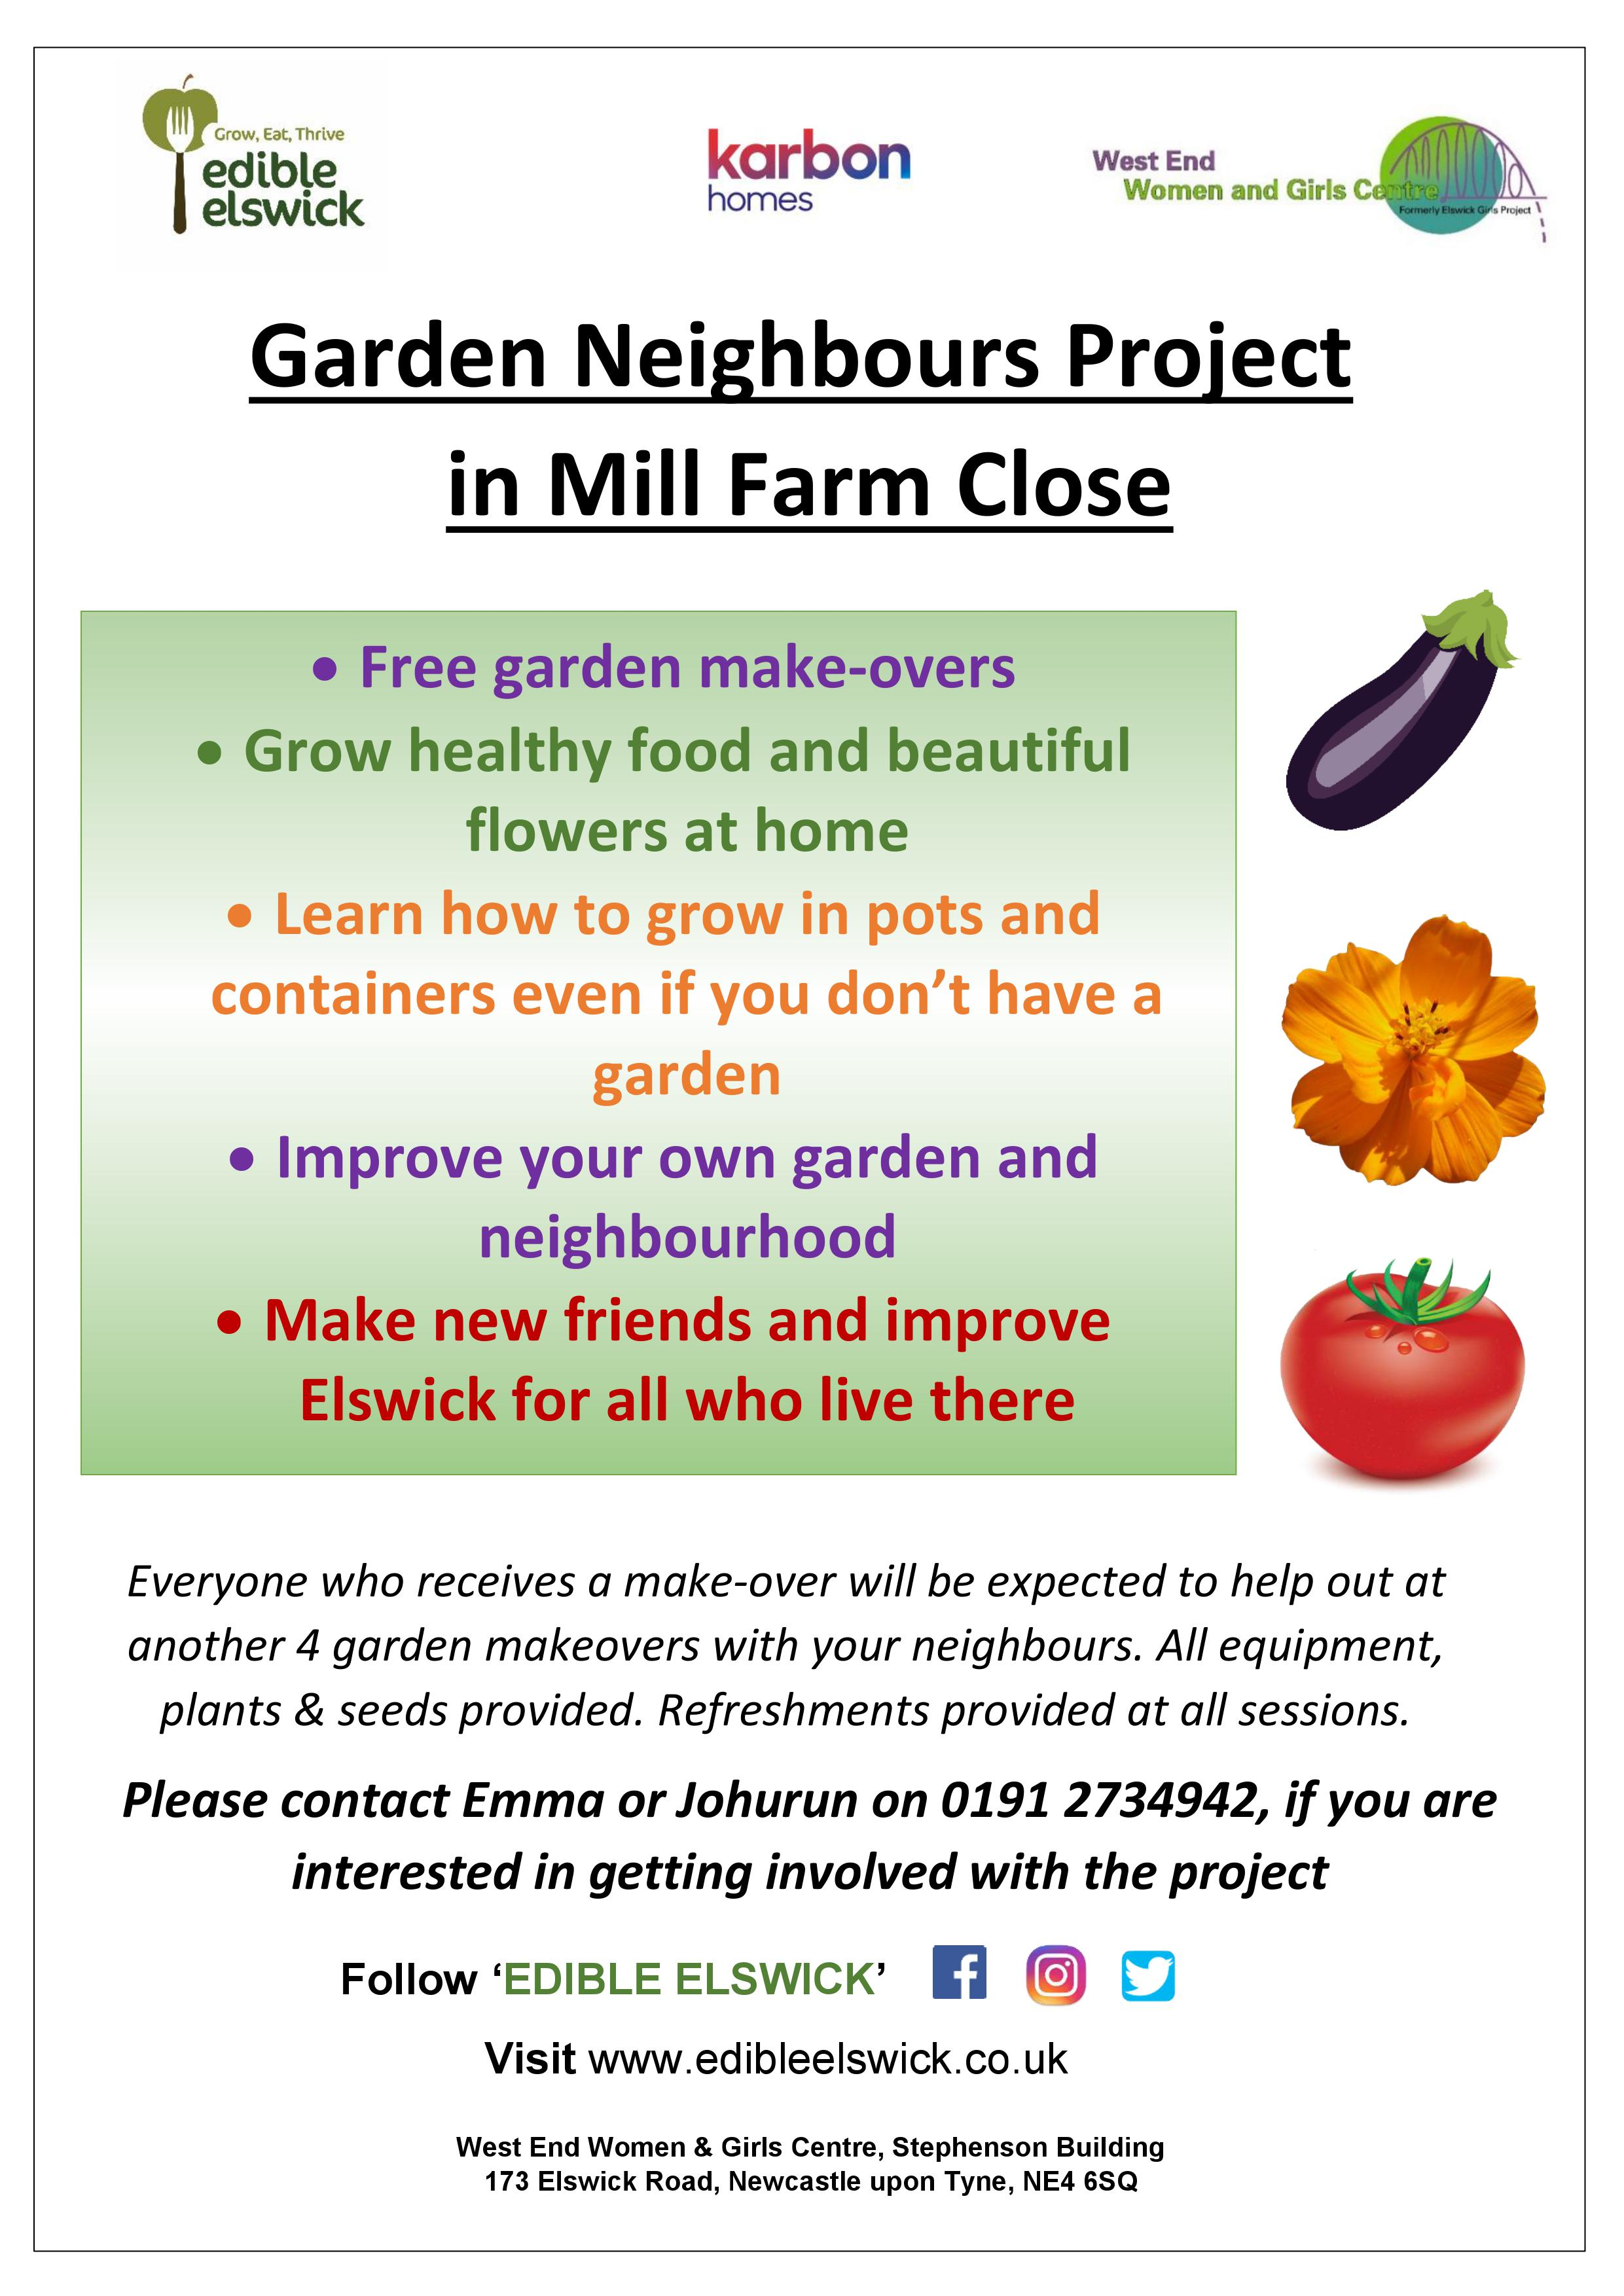 Garden Neighbours Weekly Sessions on Mill Farm Close and Elswick - Every Monday 10am-12pm (except Bank Holidays). Sessions running until Monday 16th July.West End residents are welcome to come along and help others with their gardens on Mill Farm Close and other locations in Elswick, at fun sessions!Mini garden makeovers can include digging over beds, planting new flowers, freshening up hanging baskets, general tidy and more.Have a laugh, get to know others and help make a big difference in a short space of time!If you'd like to find out more, get in touch with Emma or Johurun via email hello@edibleelswick.co.uk or call 0191 2734942.